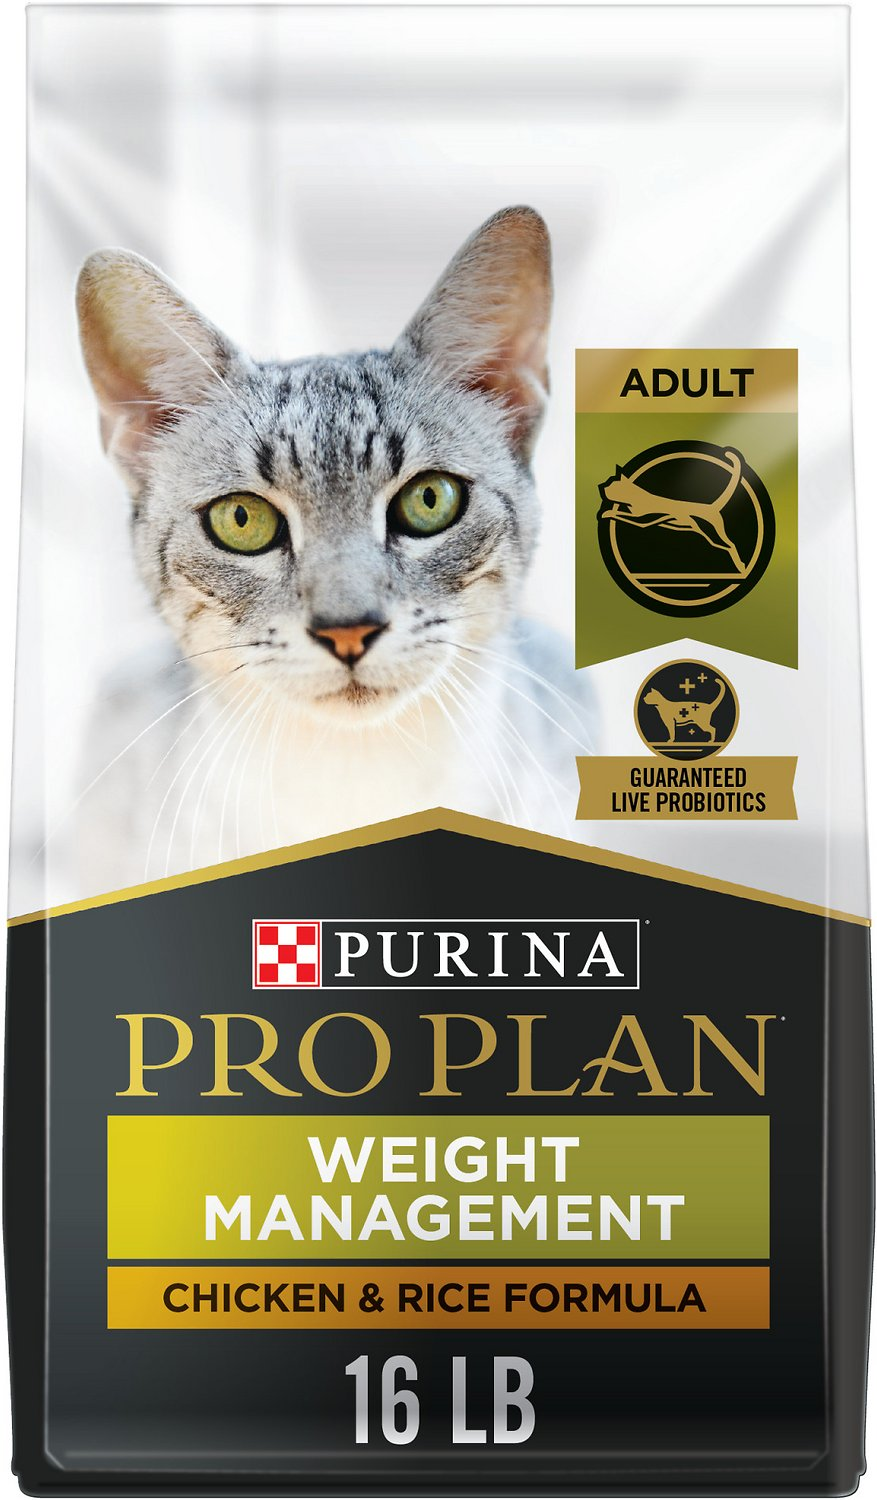 Purina Pro Plan Focus Adult Weight Management Chicken Rice Formula